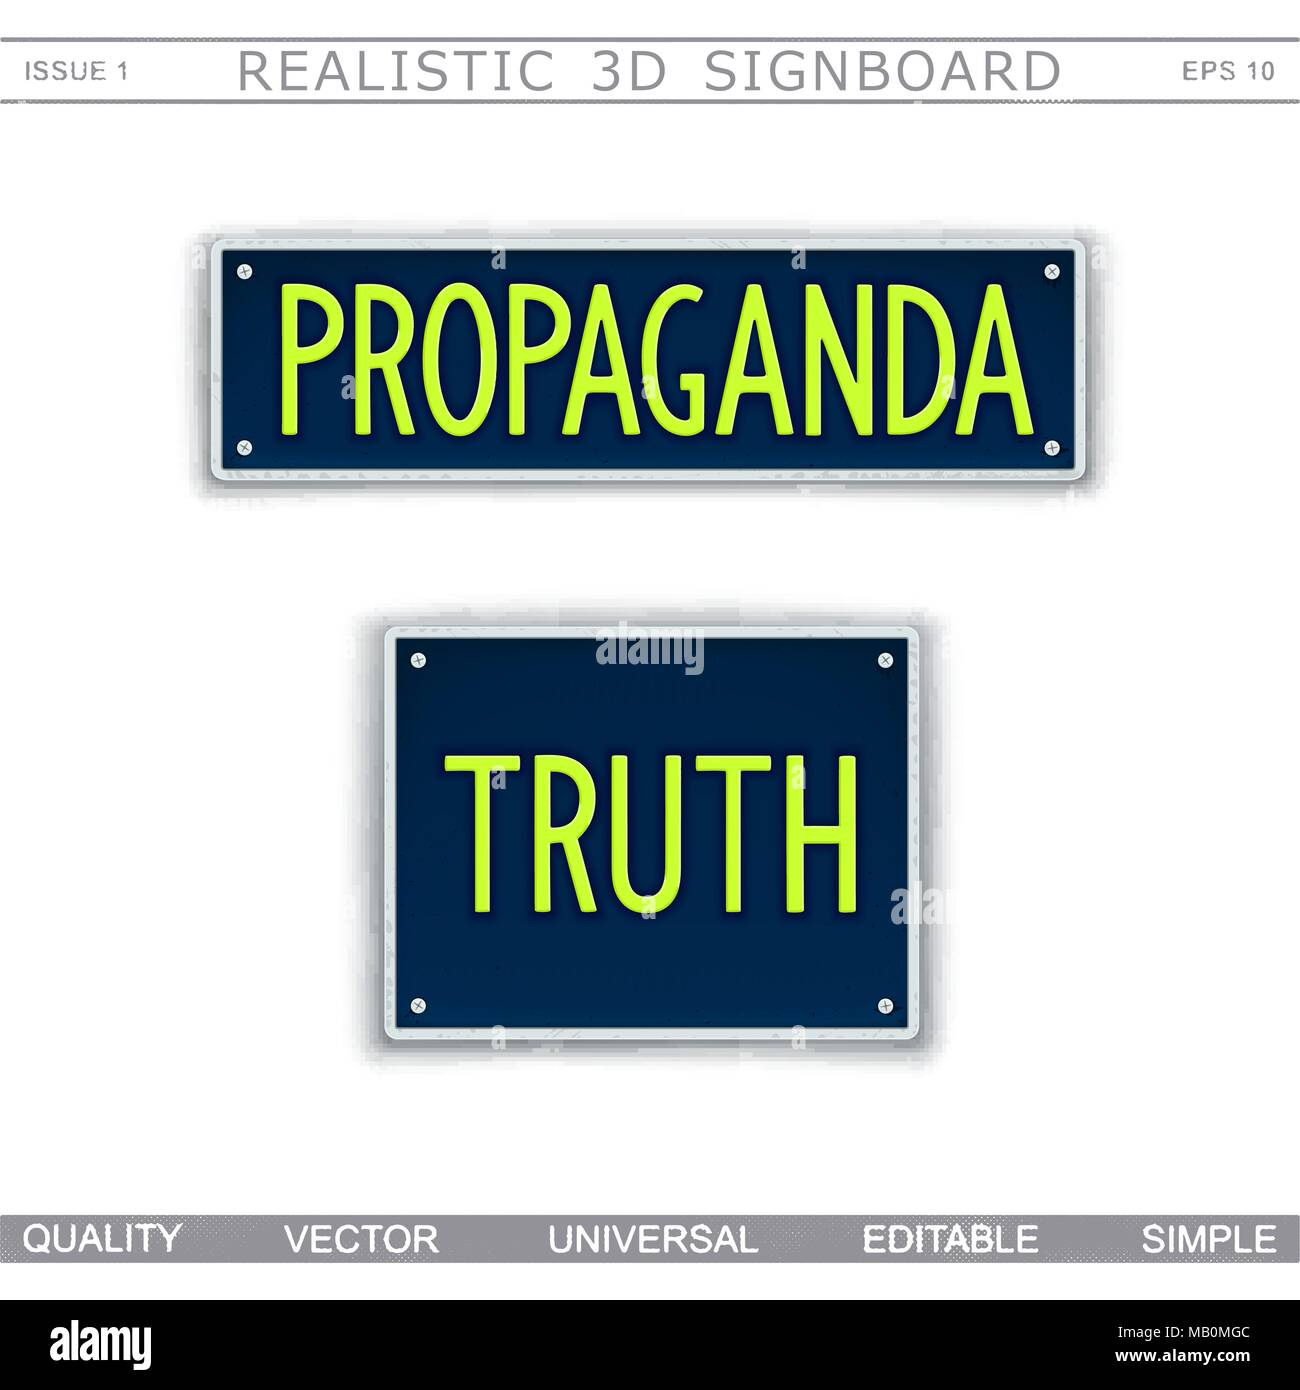 Conceptual signboard design. Information war. Propaganda and Truth. Car license plate stylized. Vector elements - Stock Vector